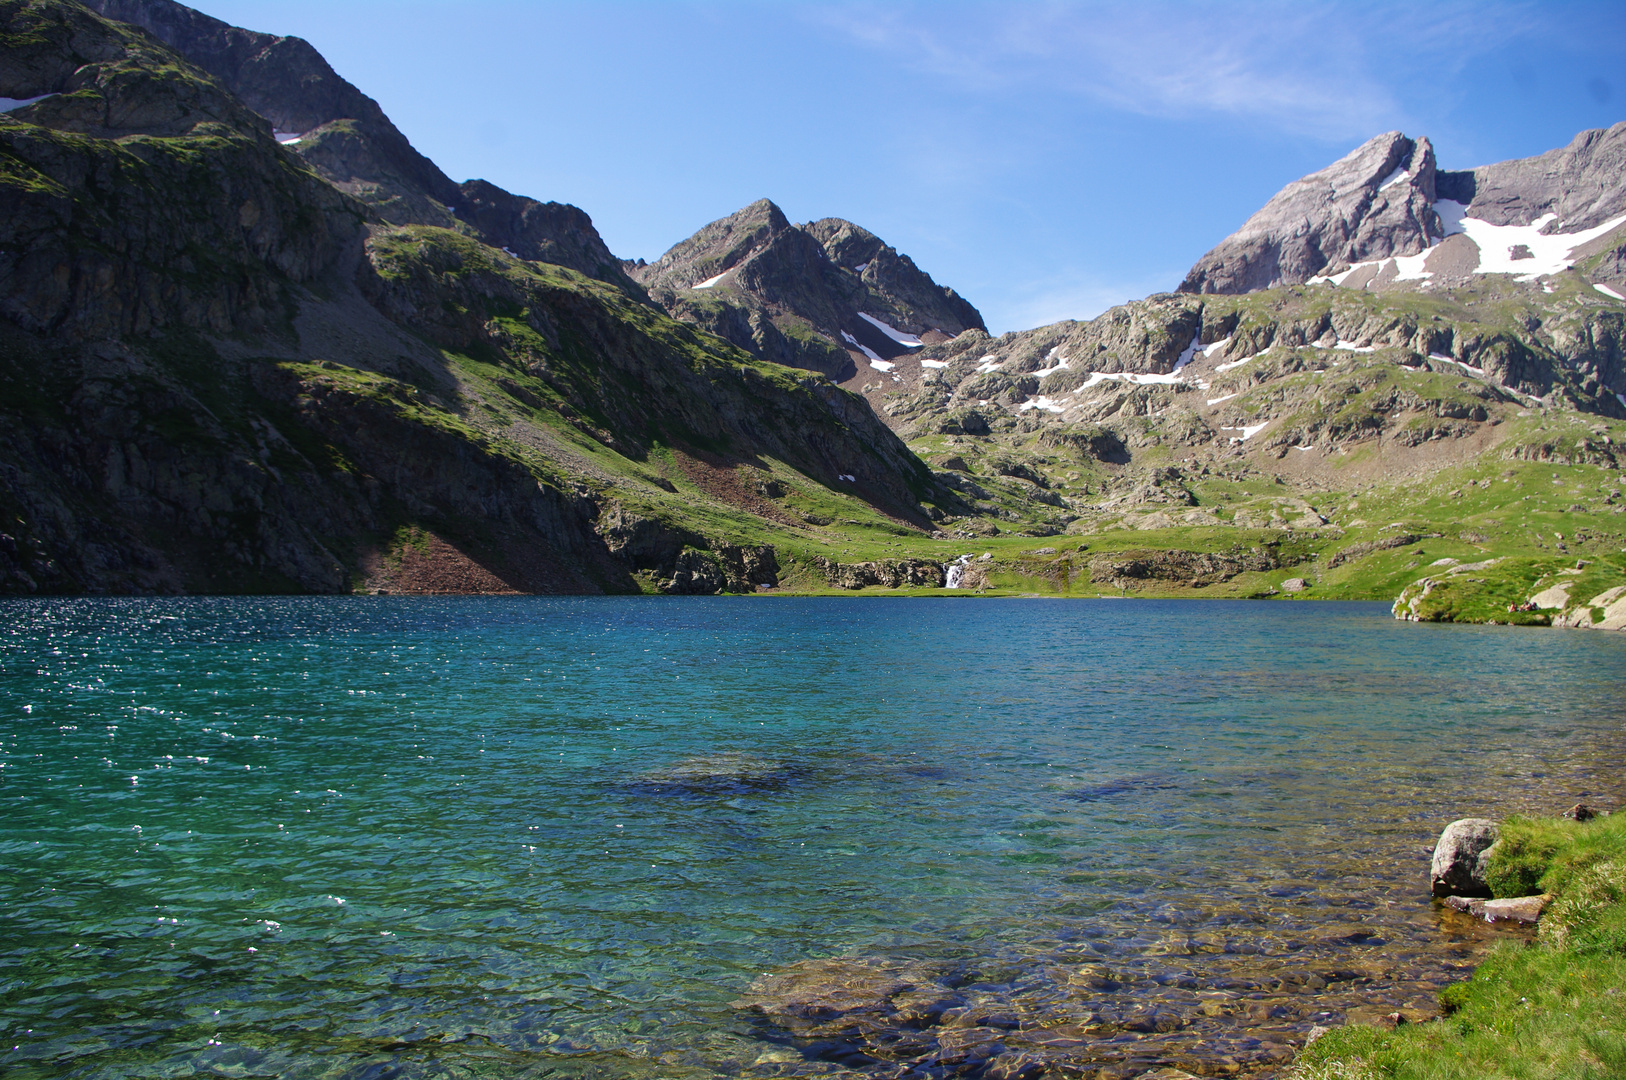 Lac d'arratille (2528 m)